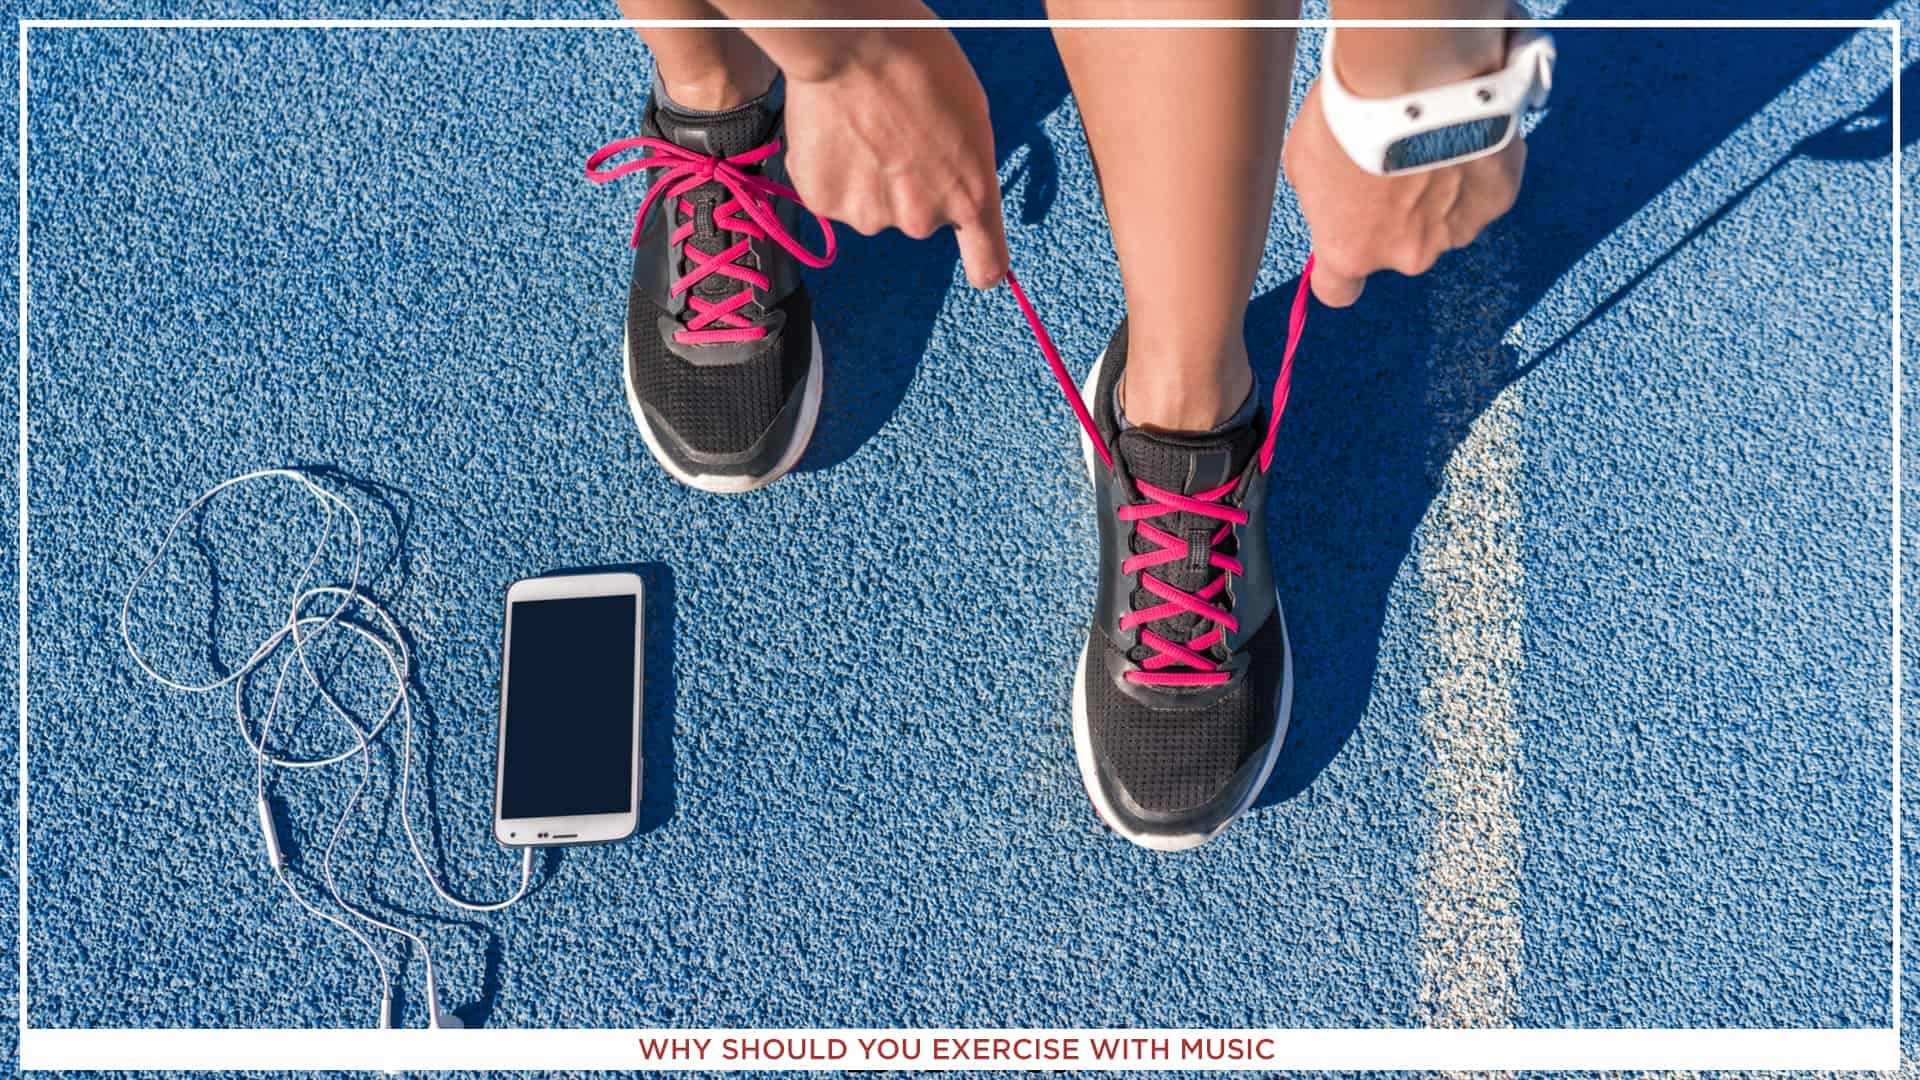 An image of someone's hands, while he ties the sneakers, with a white smartphone with white earphones on the blue ground.